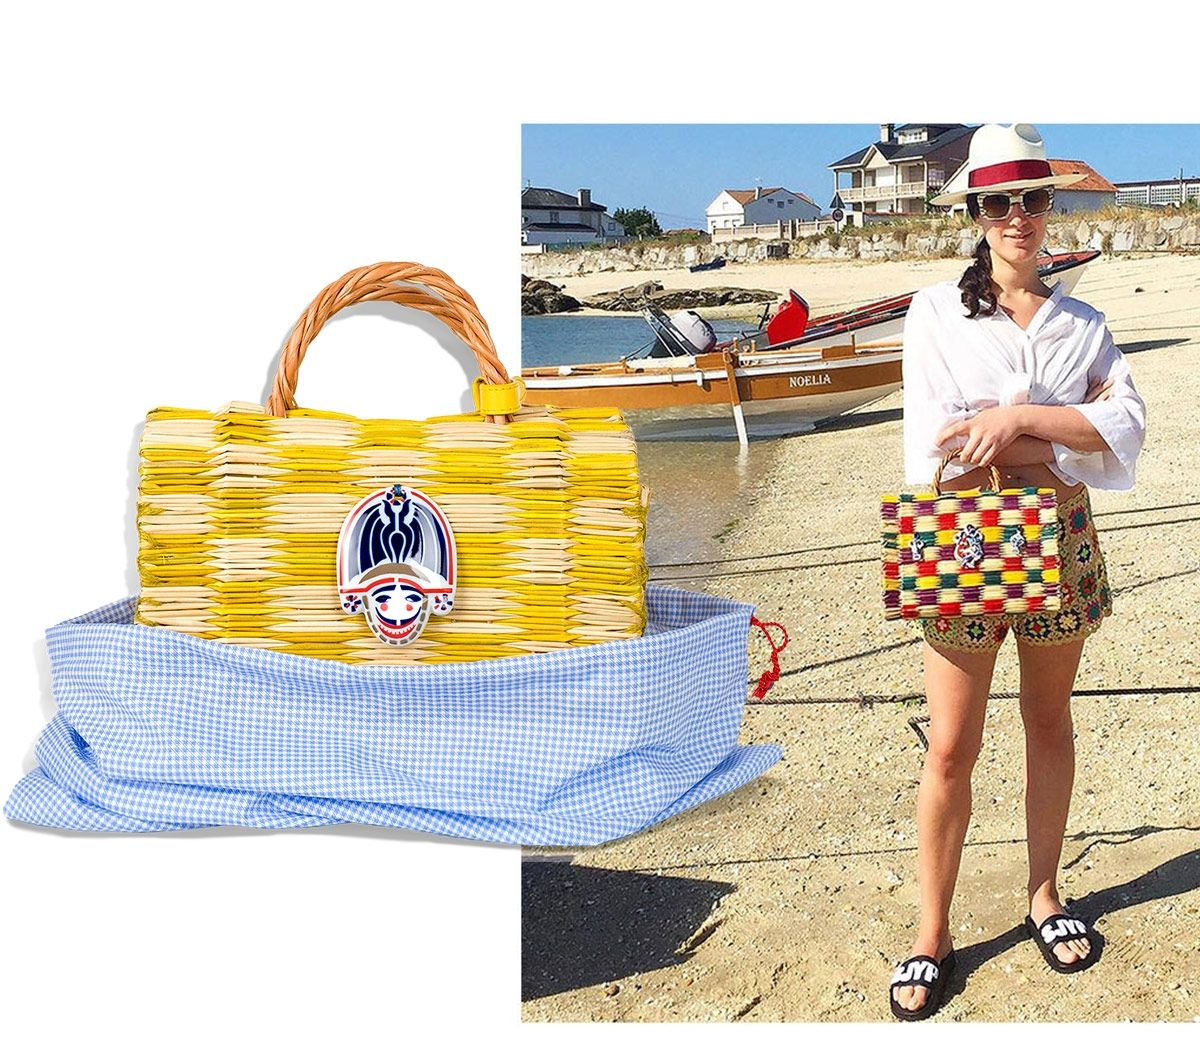 These Chic Bags Come with a Touch of Magic